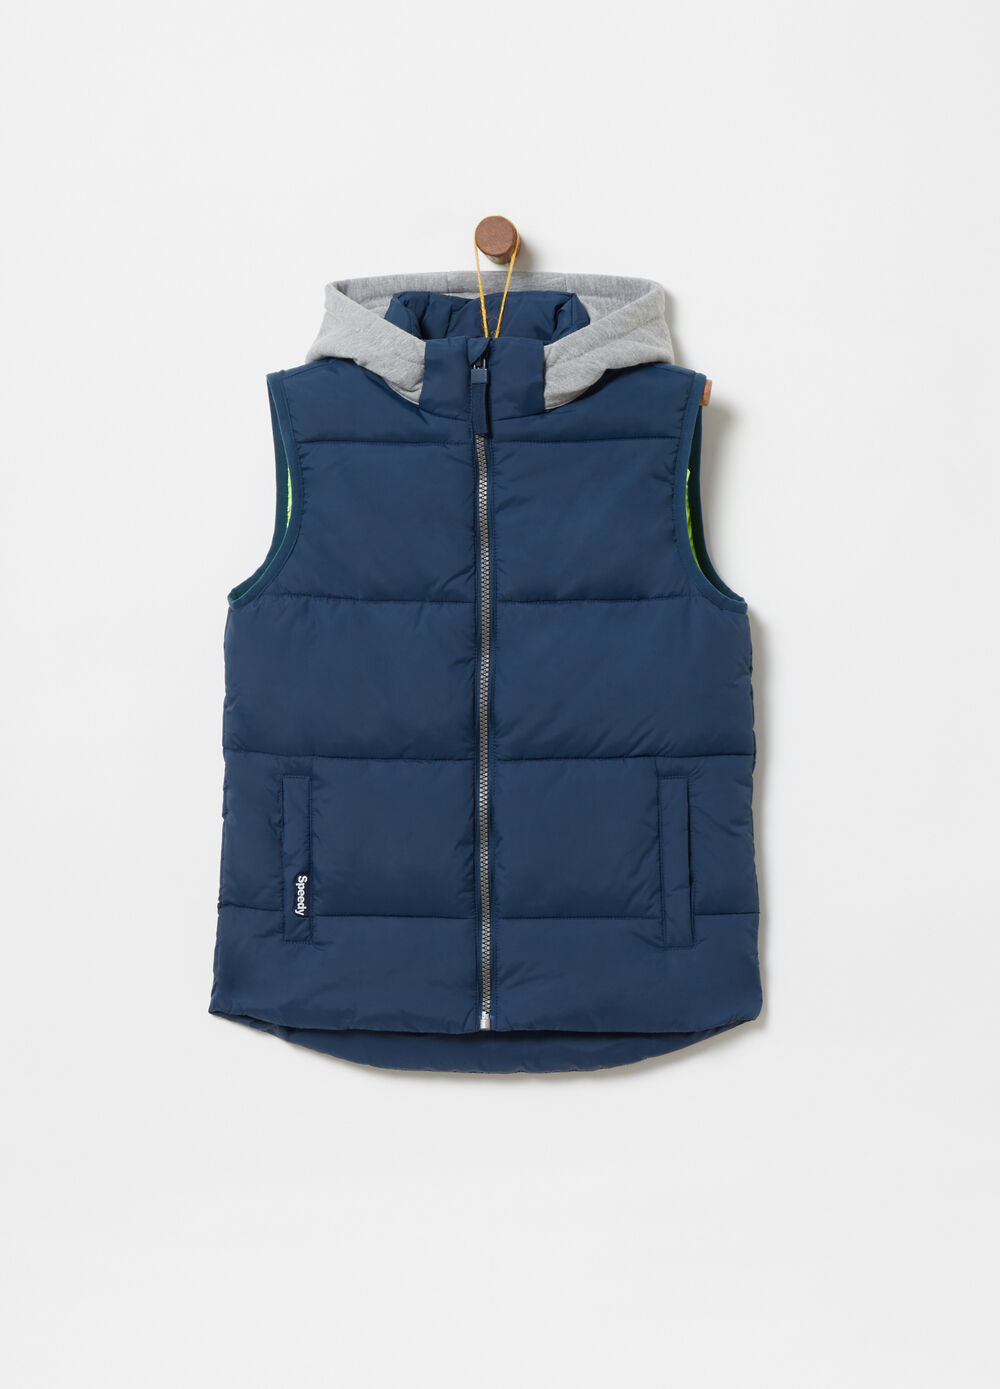 Average-weight padded gilet